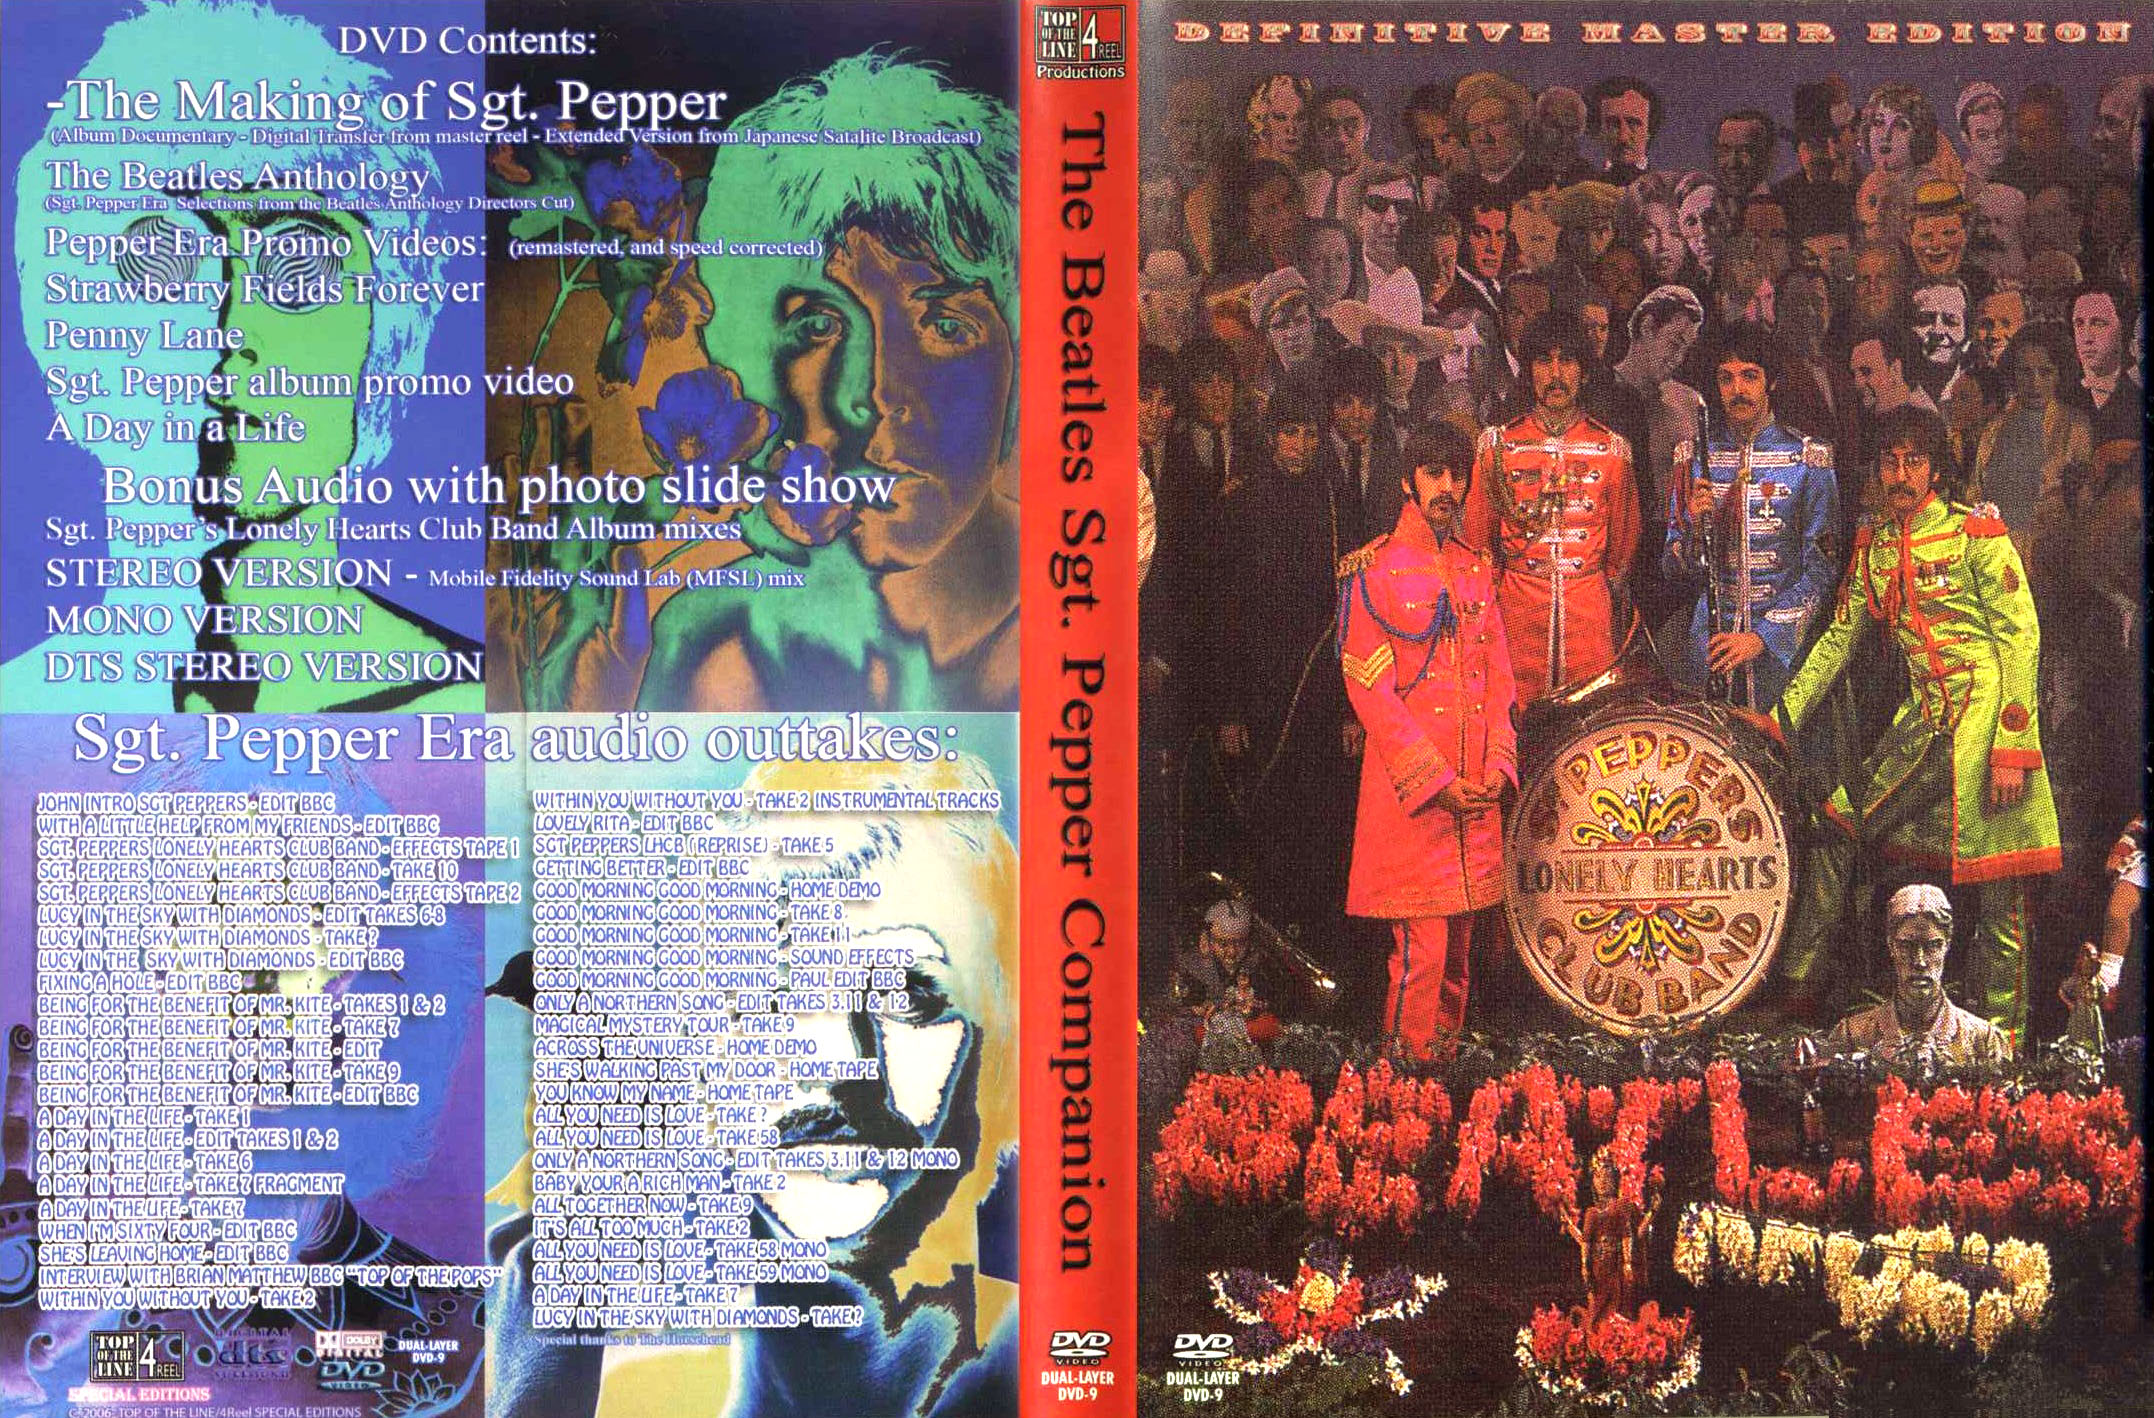 Beatles Sgt Peppers Lonely Hearts Club Band With A Little Help From My Friends